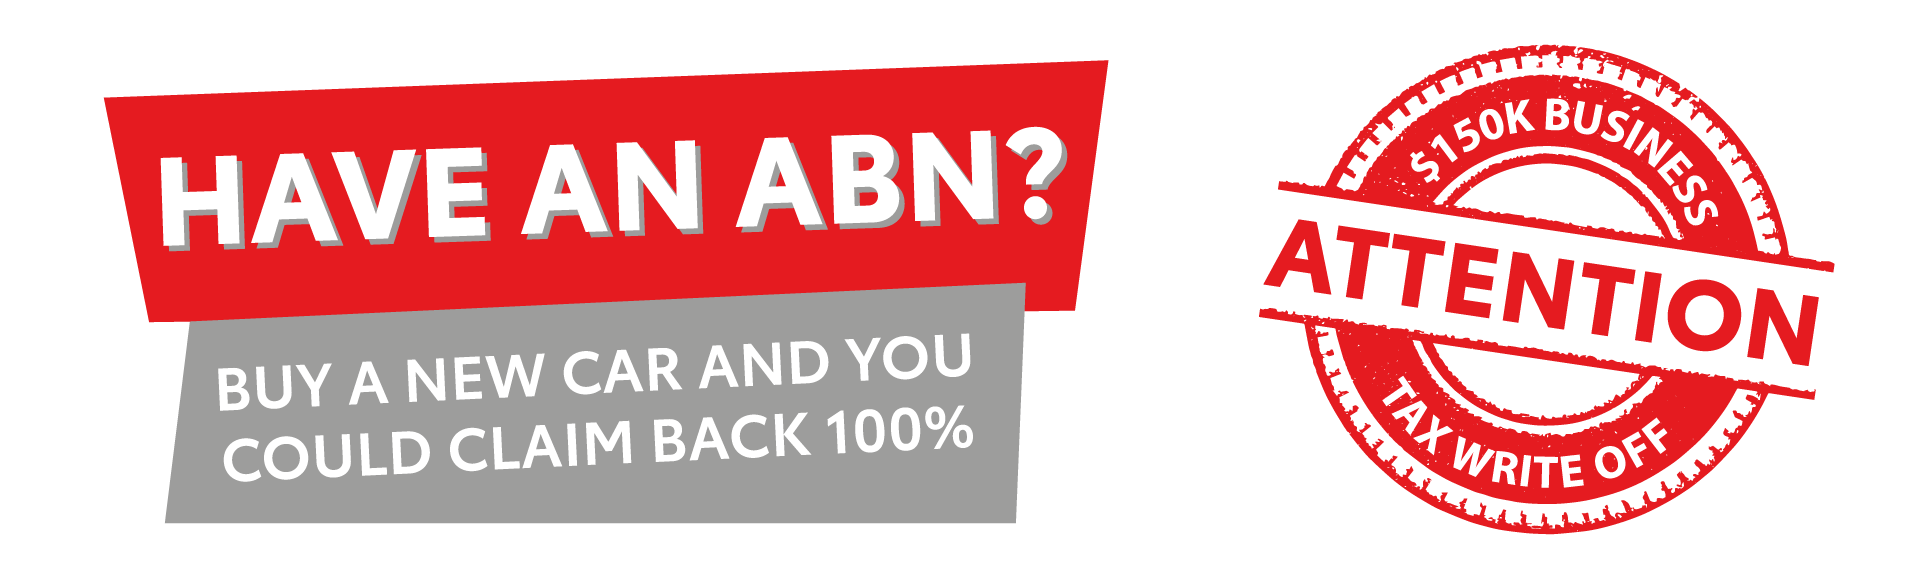 Are You An ABN Holder?